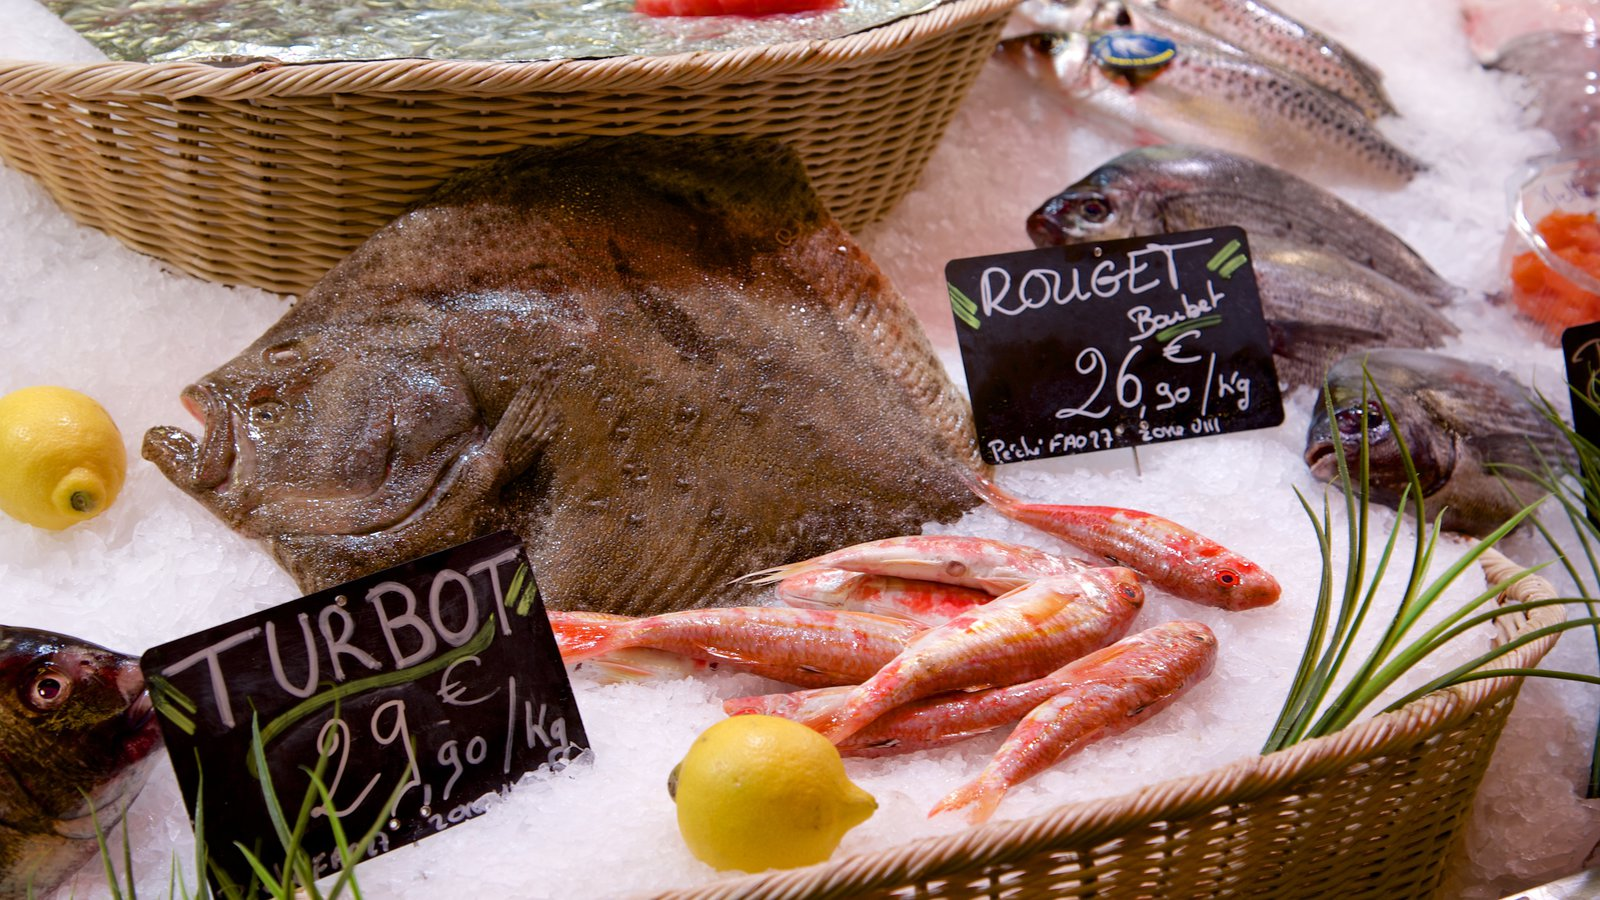 Bordeaux which includes food